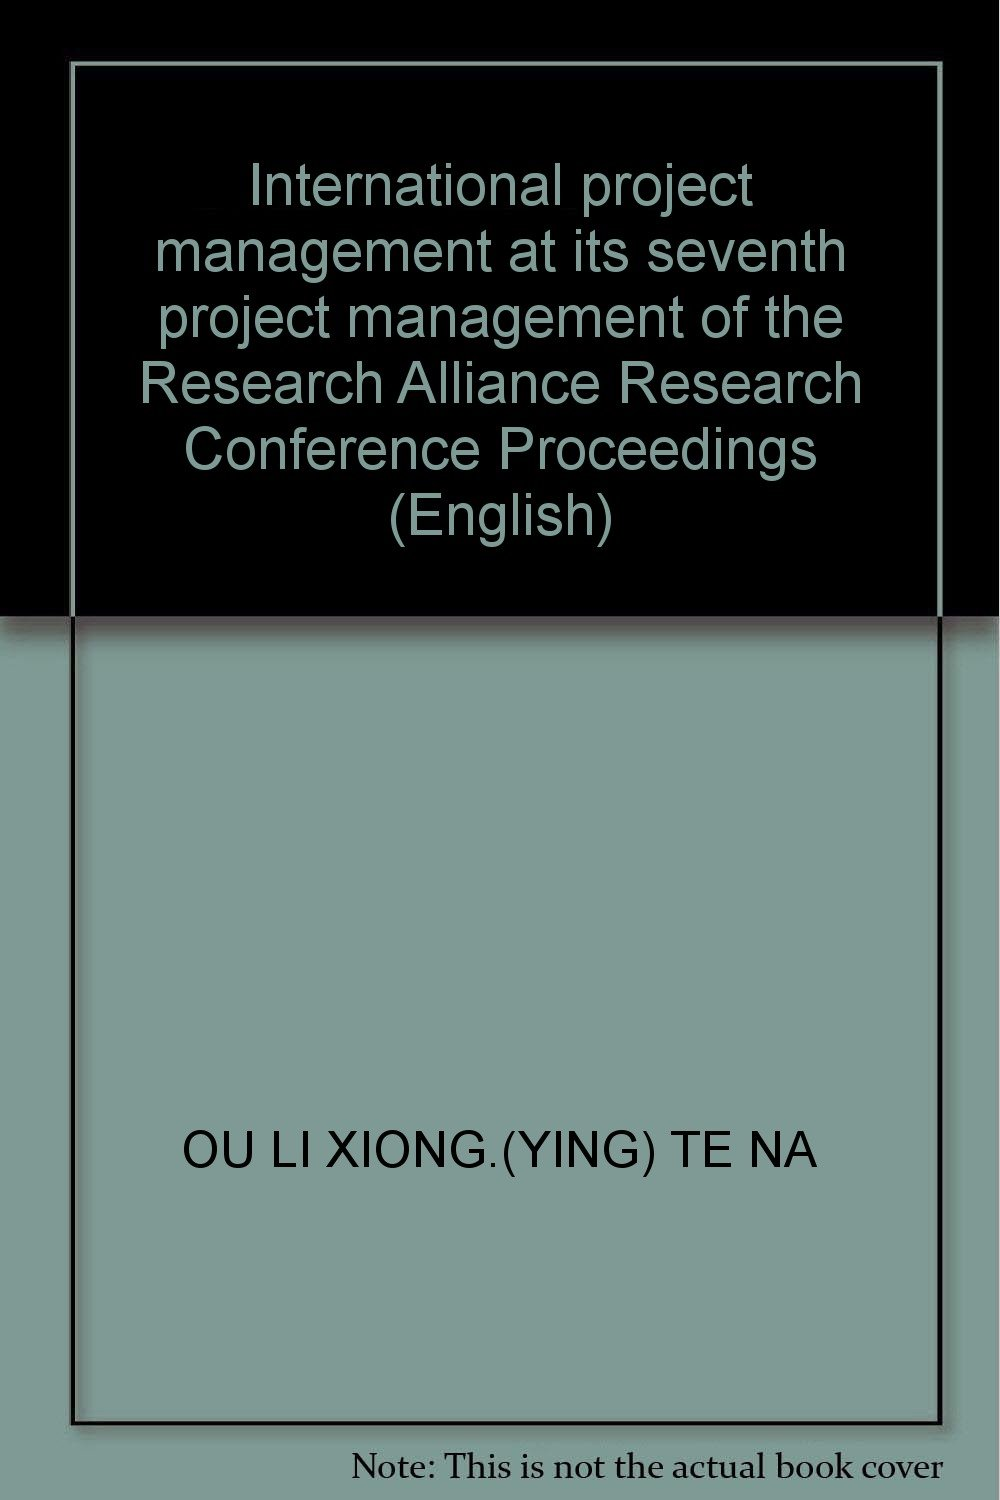 International project management at its seventh project management of the Research Alliance Research Conference Proceedings (English) ebook